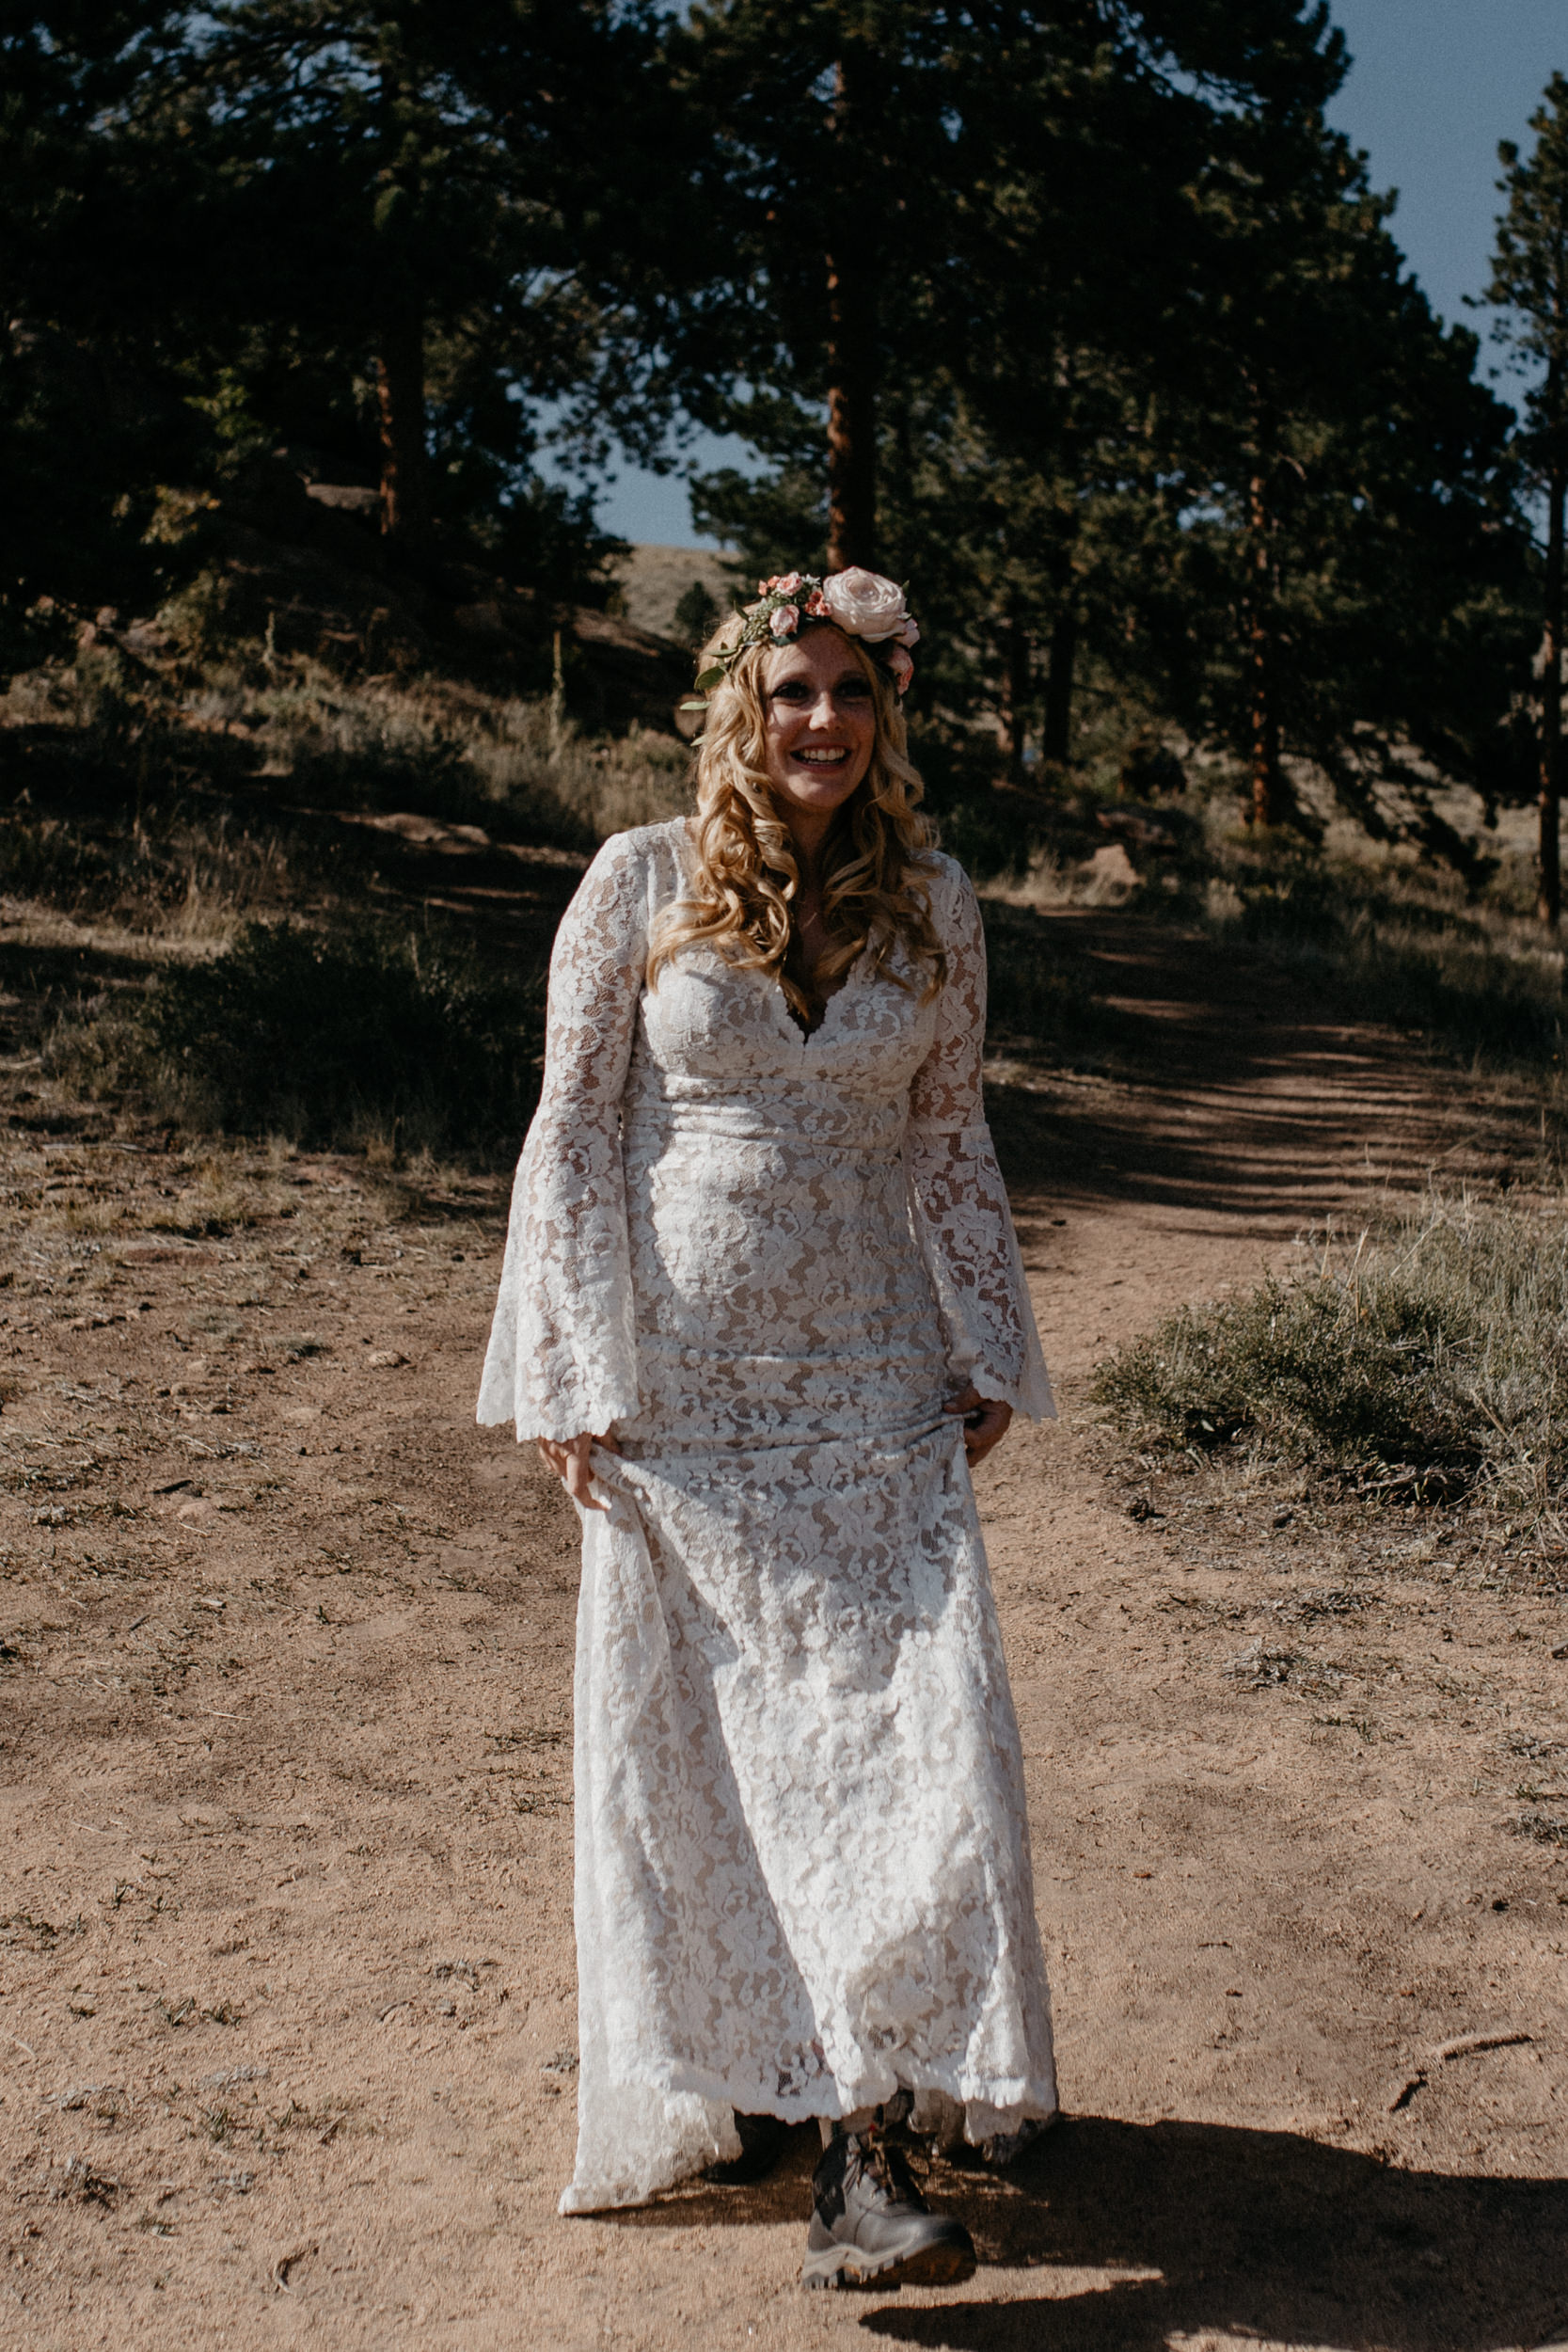 Bride walking down alter at 3M curve elopement in Rocky Mountain National Park.